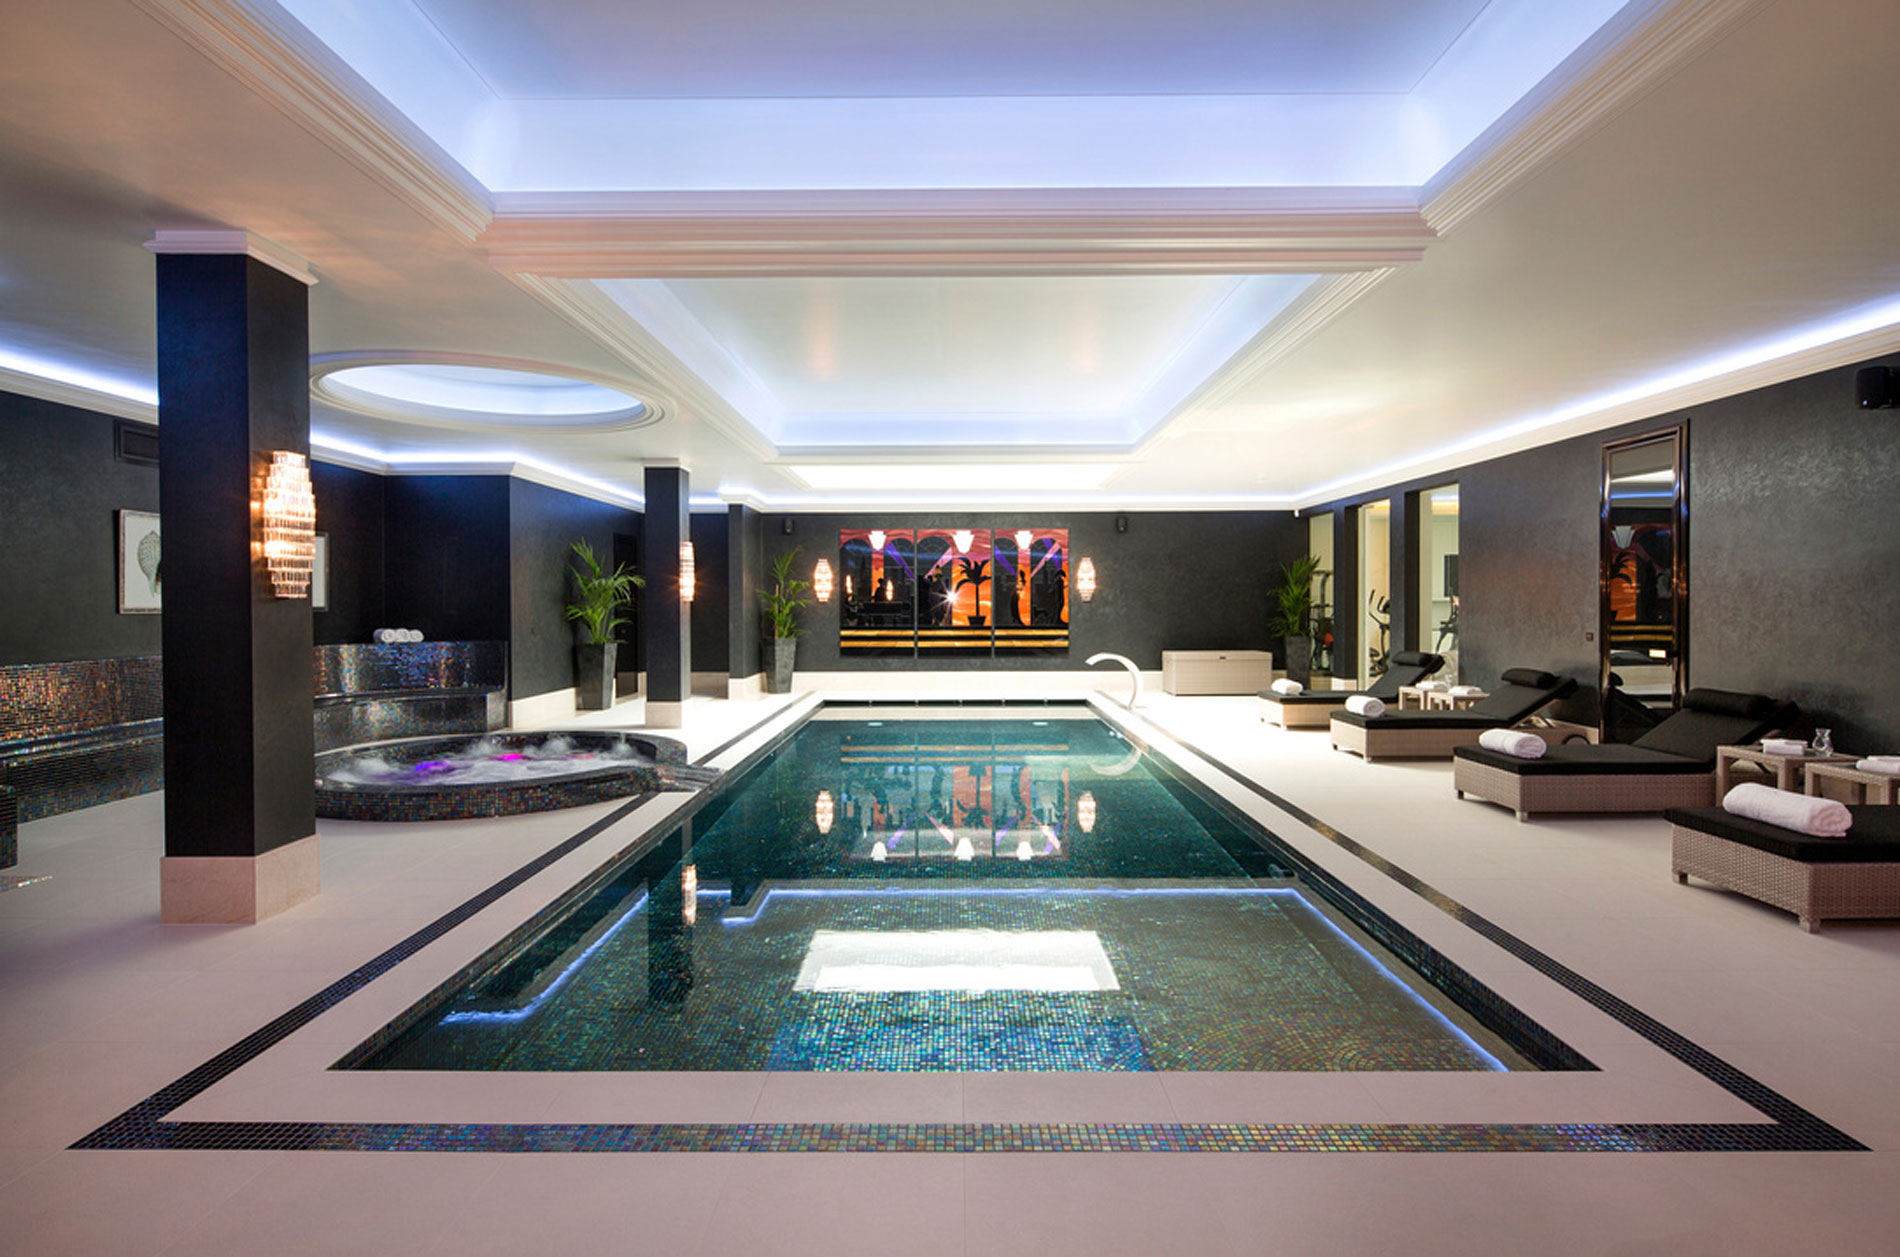 Subterranean Paradise: Our 7,500 Sq Ft Hampstead New Build Basement Project  Featuring A Swimming Pool, Gym, Steam Room, Jacuzzi, Sauna, Massage Room  And ...